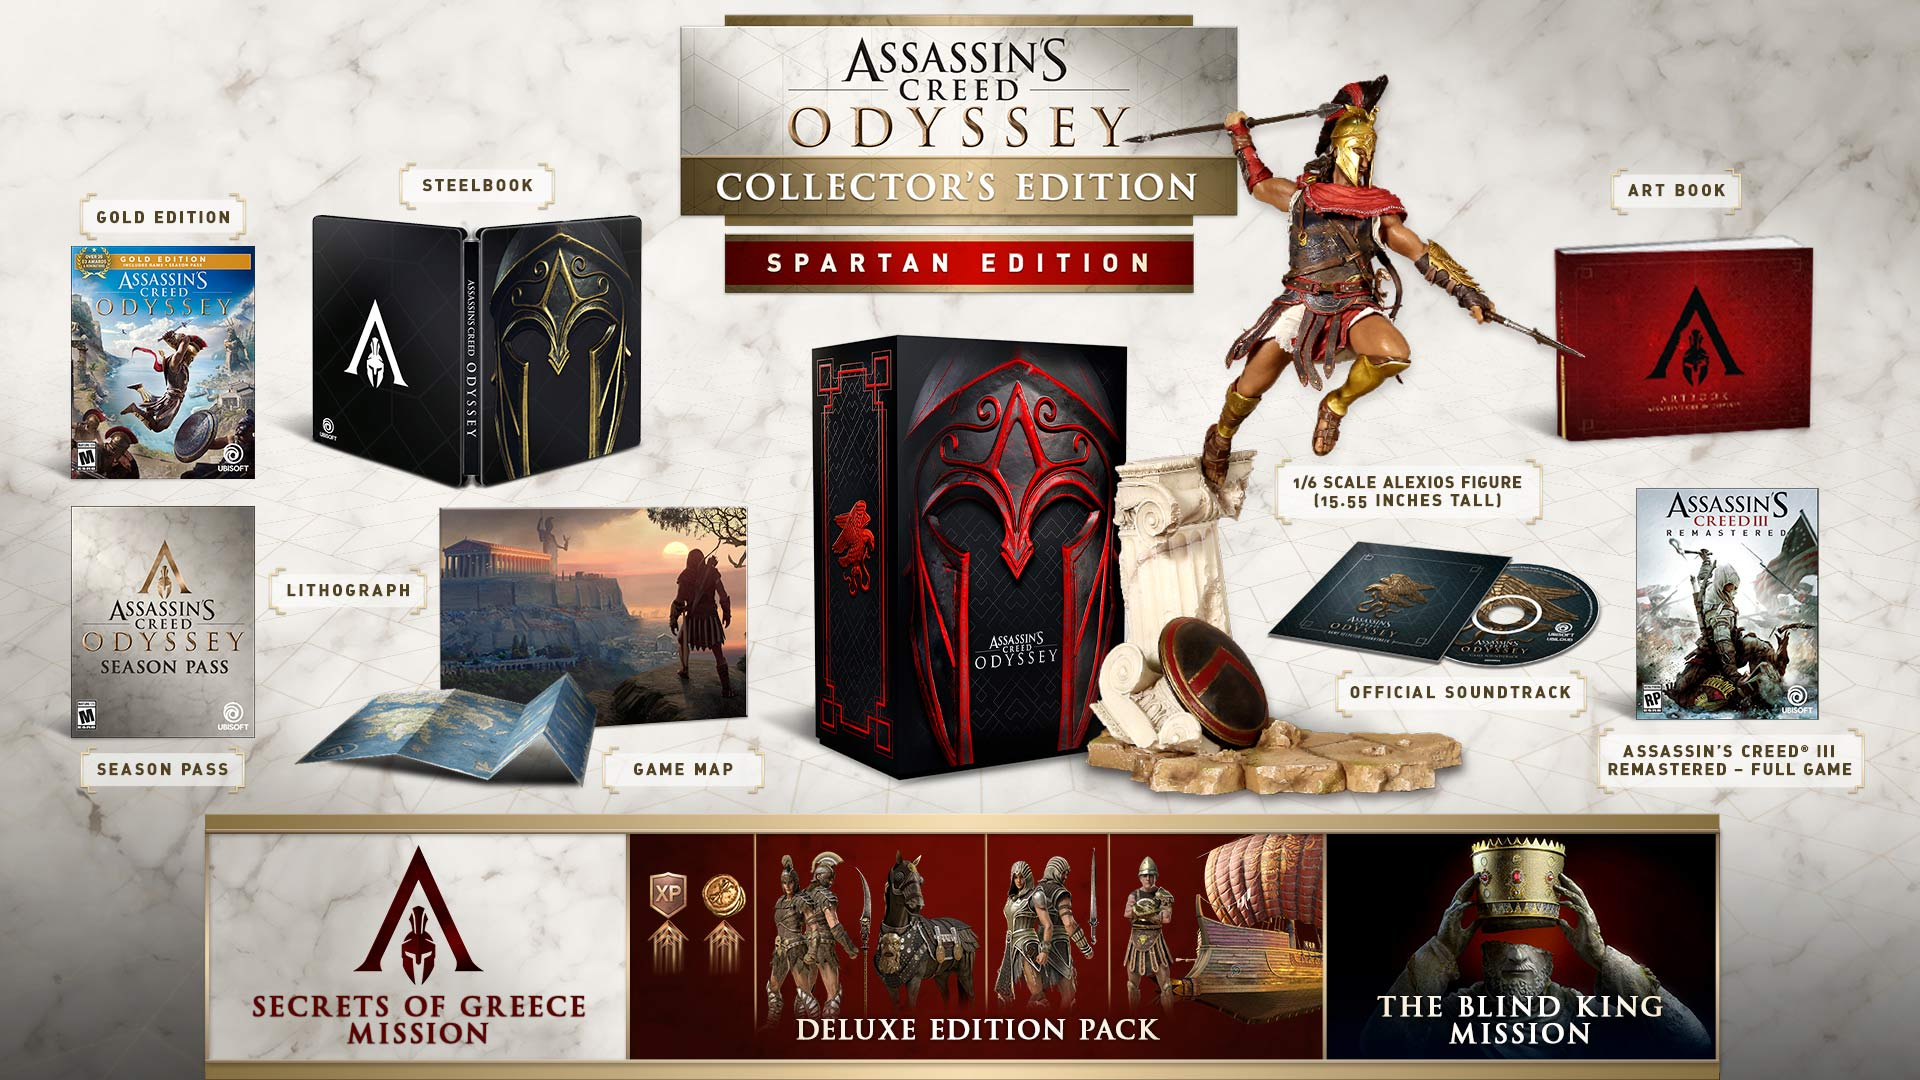 assassins creed odyssey spartan collector edition